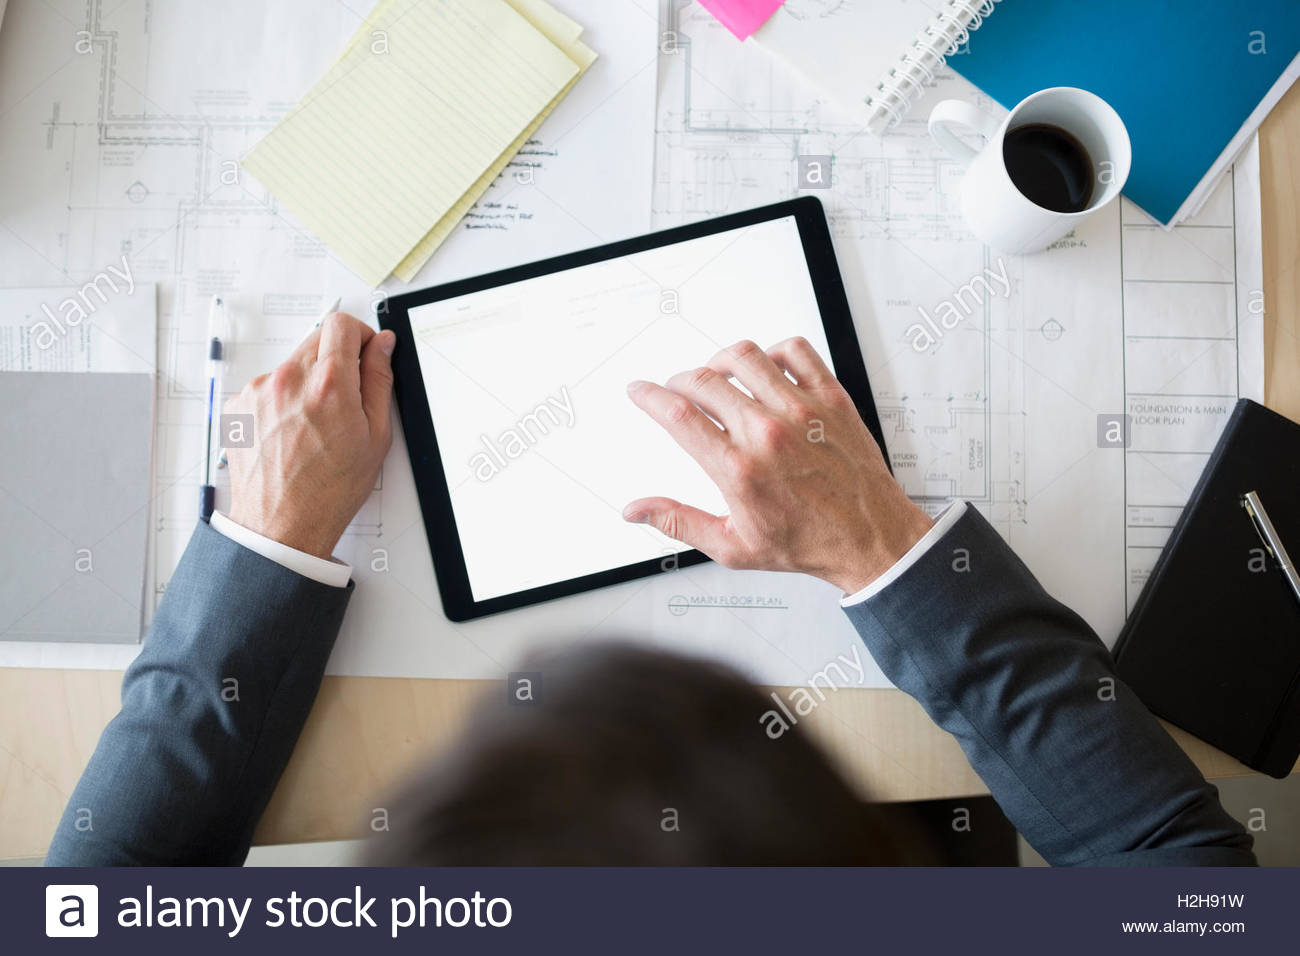 Overhead view architect using digital tablet - Stock Image